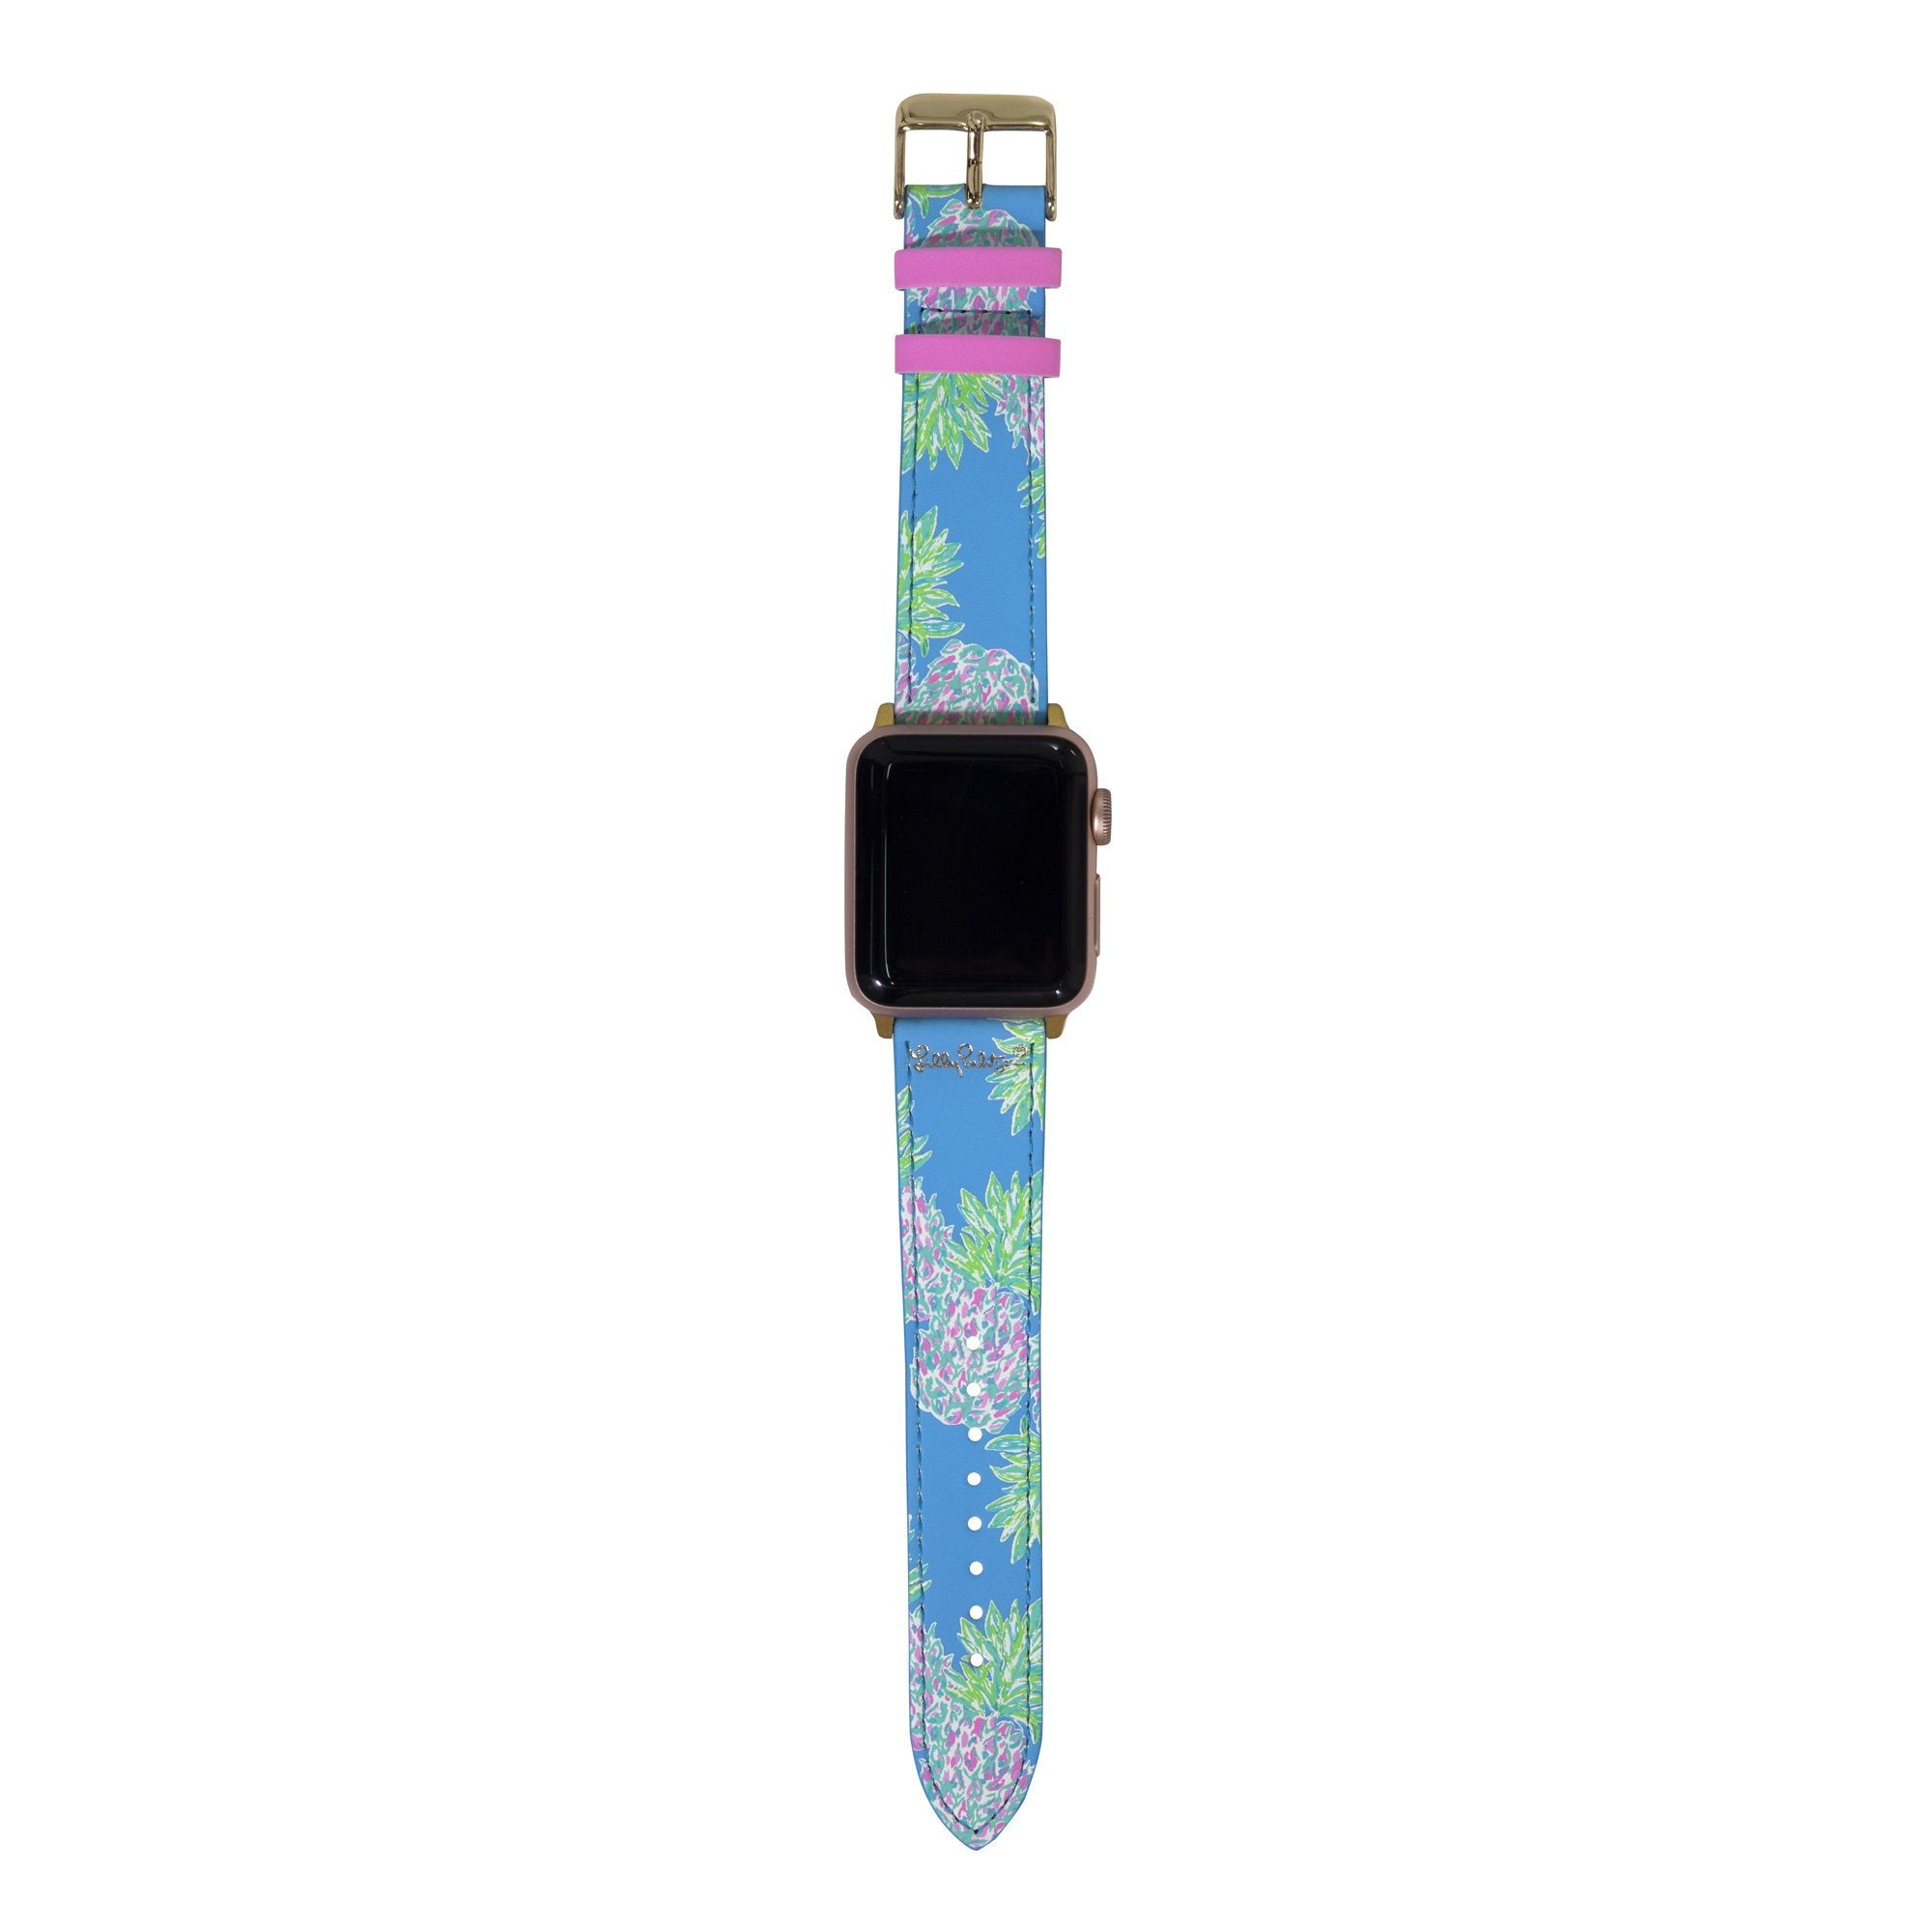 Lilly Pulitzer Apple Watch Band, Swizzle In